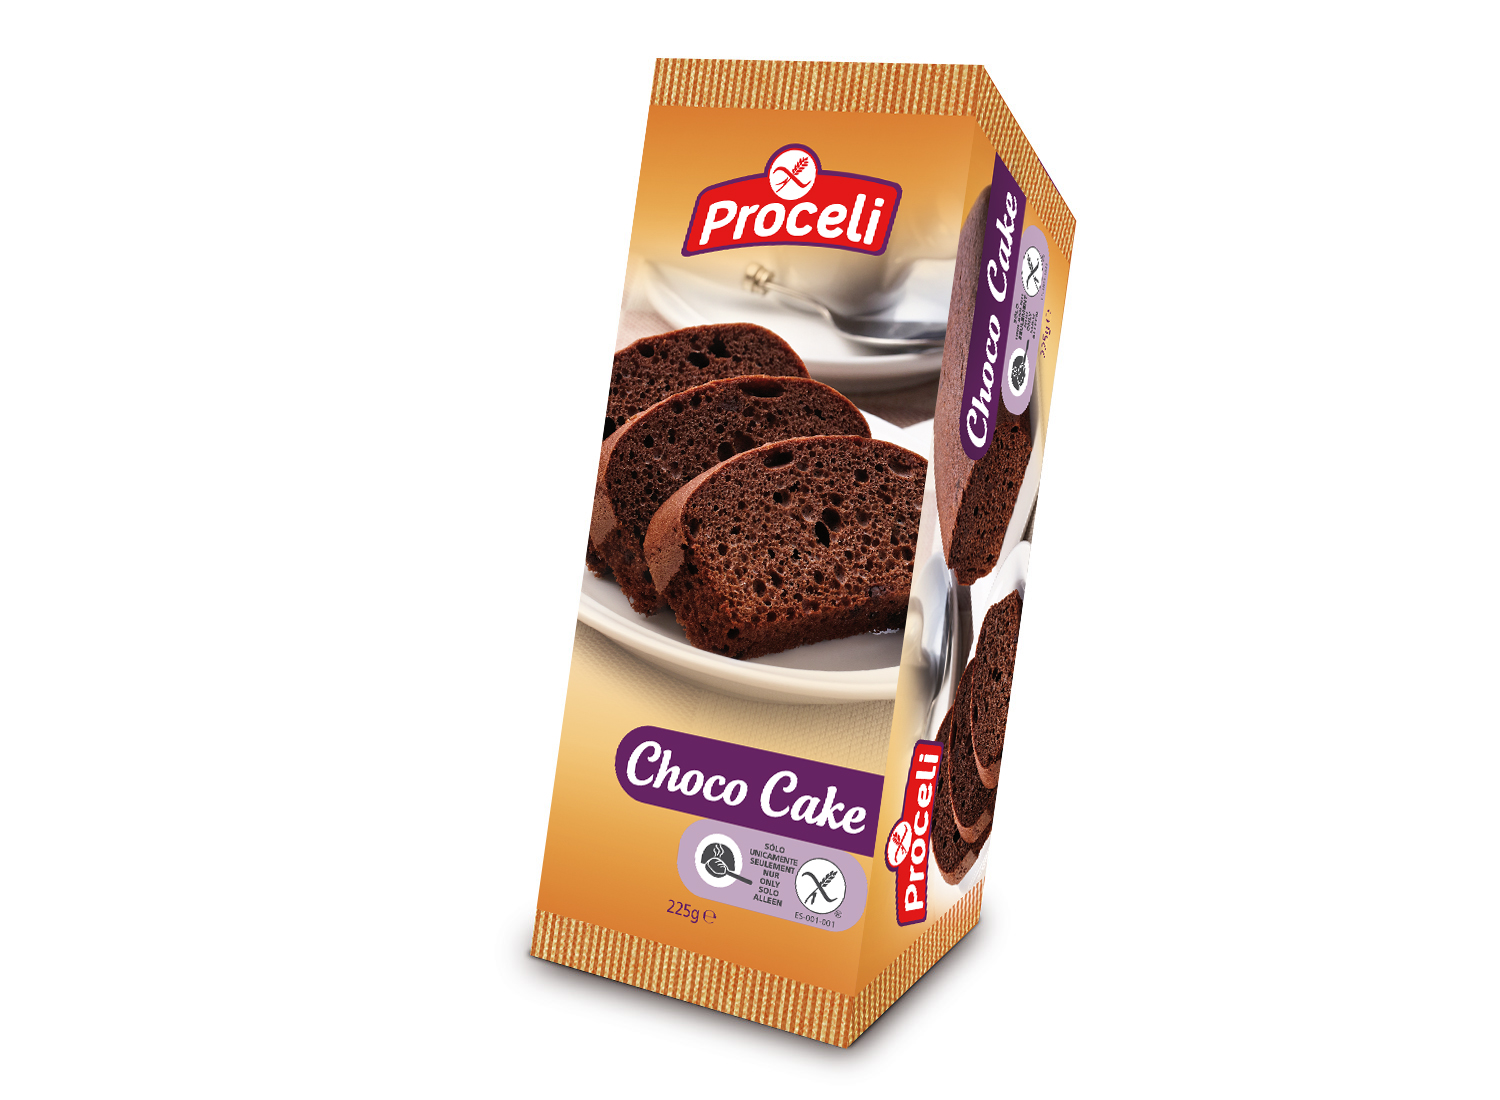 Chocolate-Cake gluten-free from Proceli